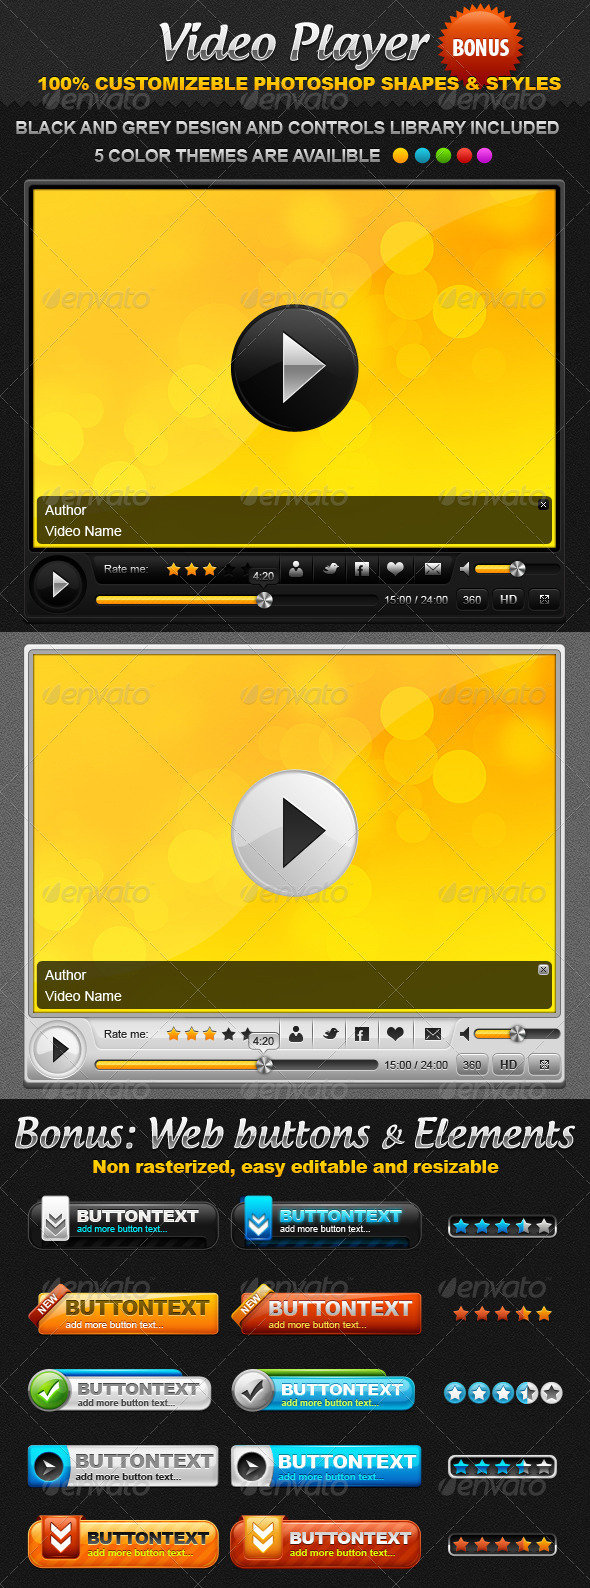 Video Player and Bonus - User Interfaces Web Elements